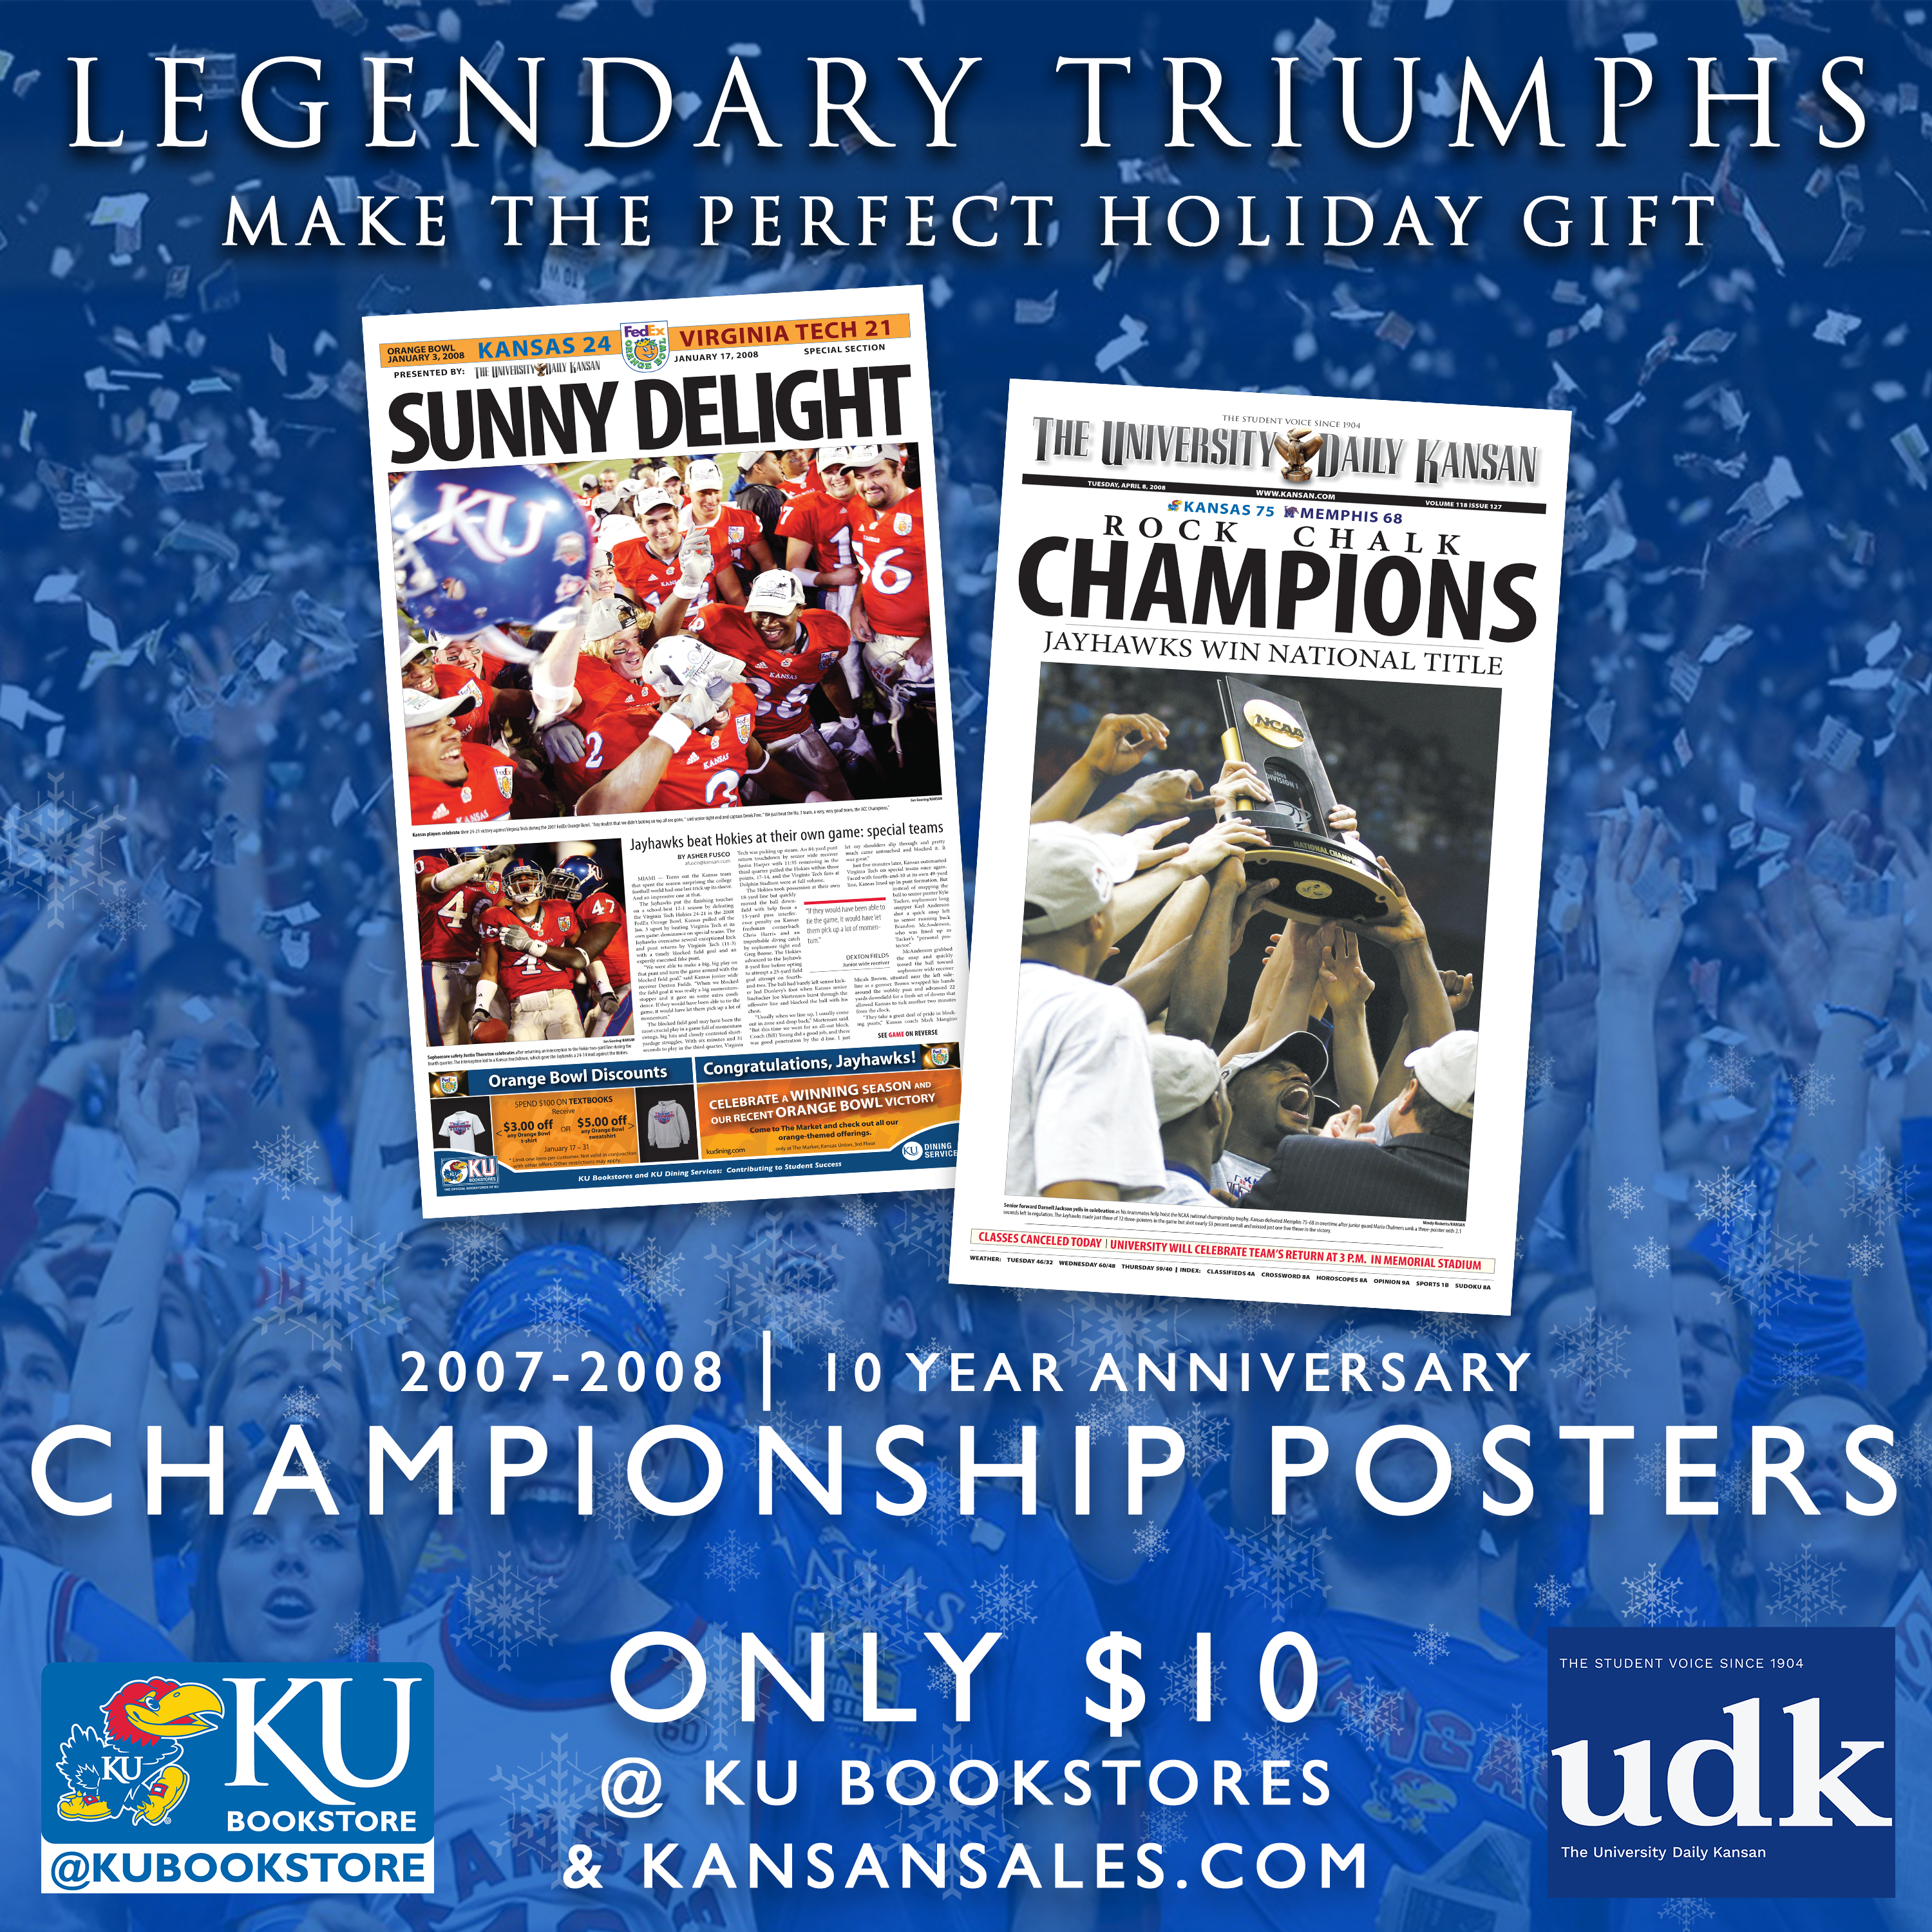 Championship Posters